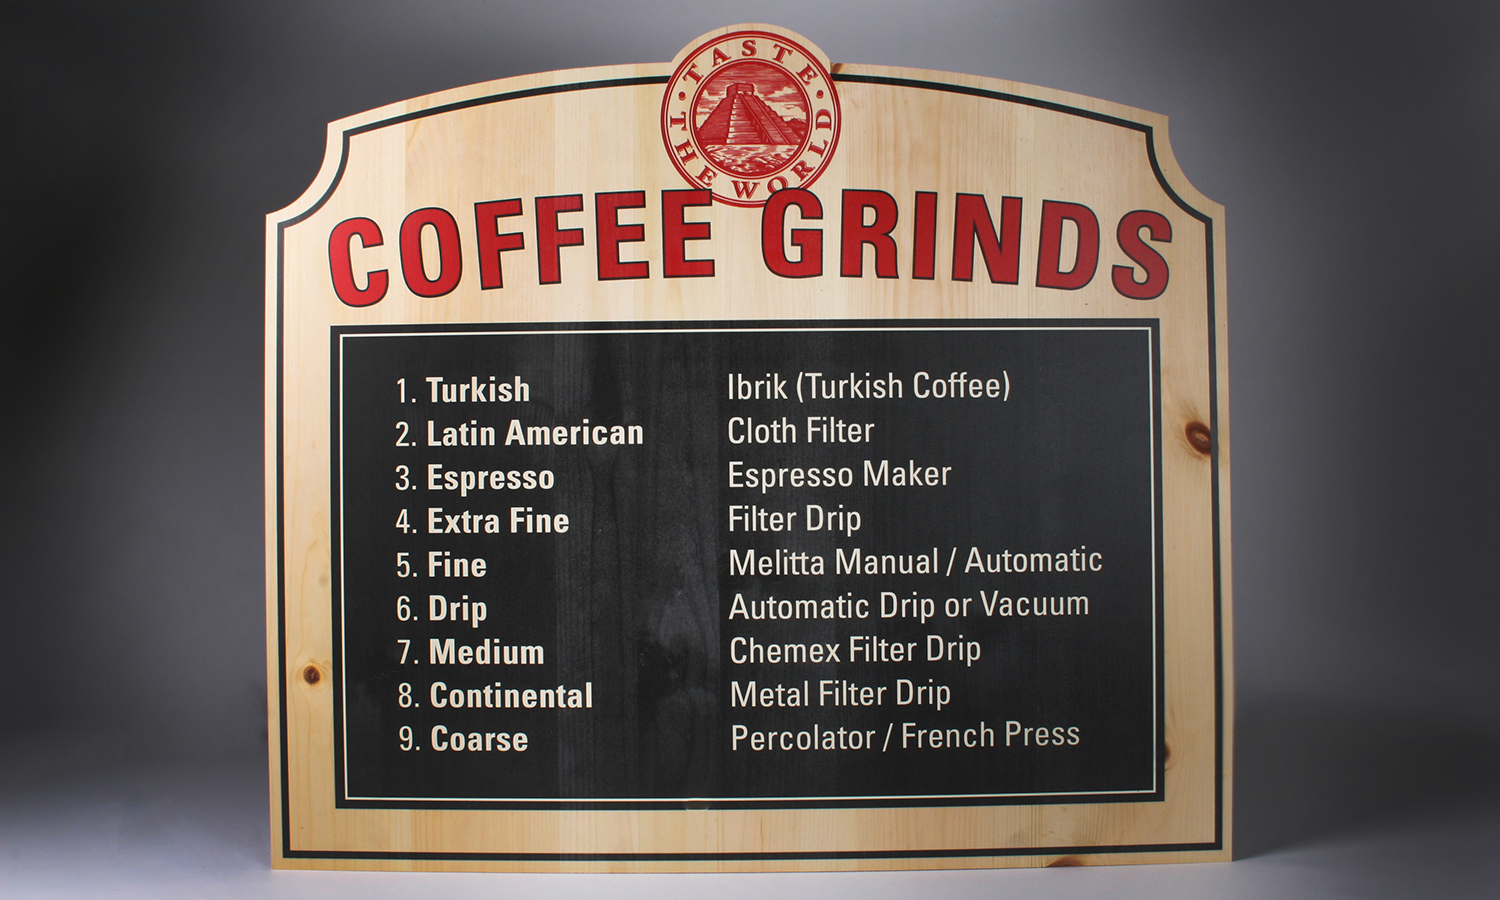 Coffe Grinds Store Sign